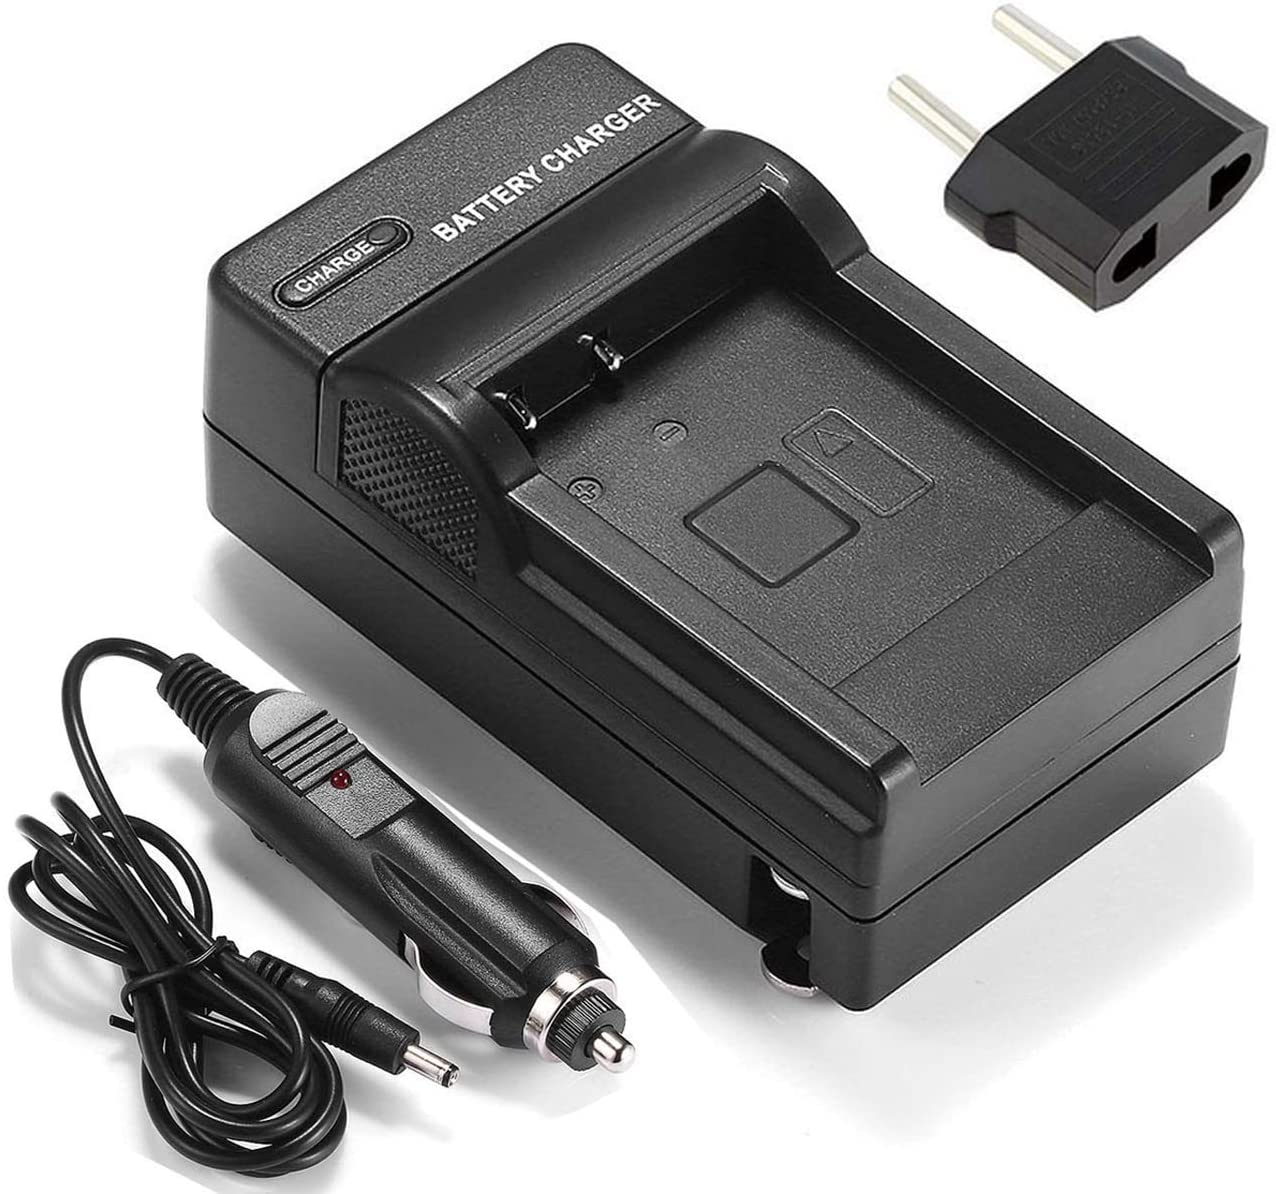 AG-AC160P AG-AC160A AG-AC160PJ Camcorder Battery Charger for Panasonic AG-AC160